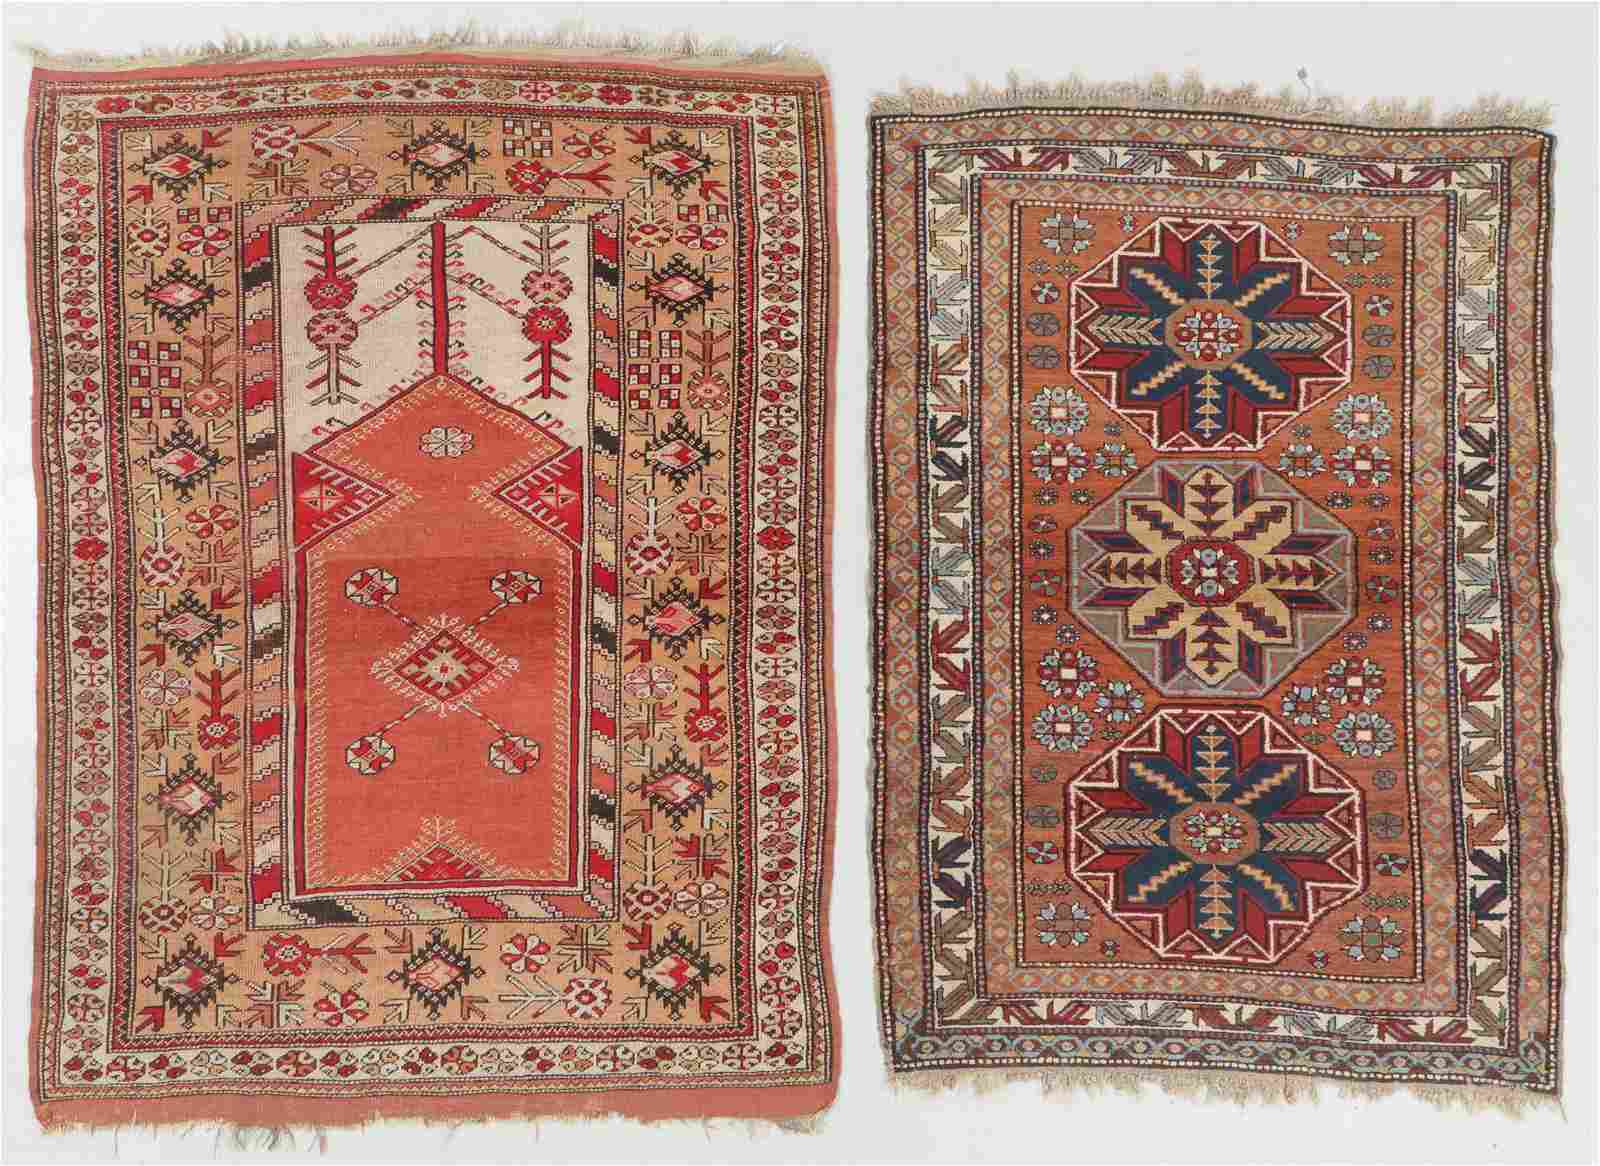 2 Semi-Antique Turkish and Caucasian Rugs